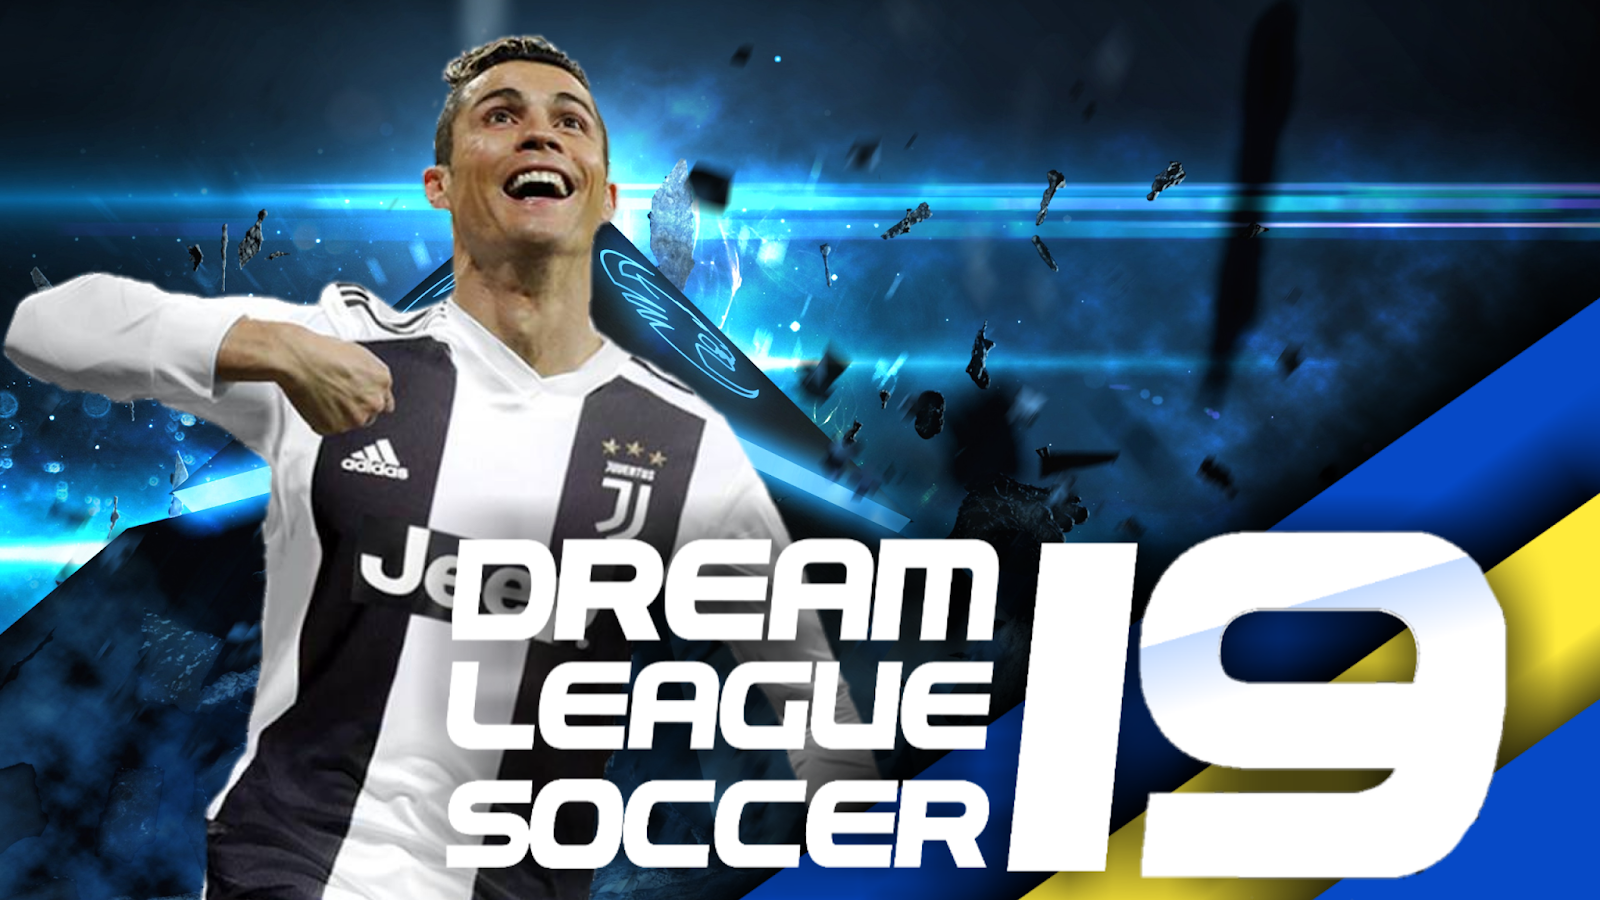 Download Dream League Soccer 2019 For Ios Dls 2019 On Iphone Ipad No Jailbreak League Soccer Soccer Kits